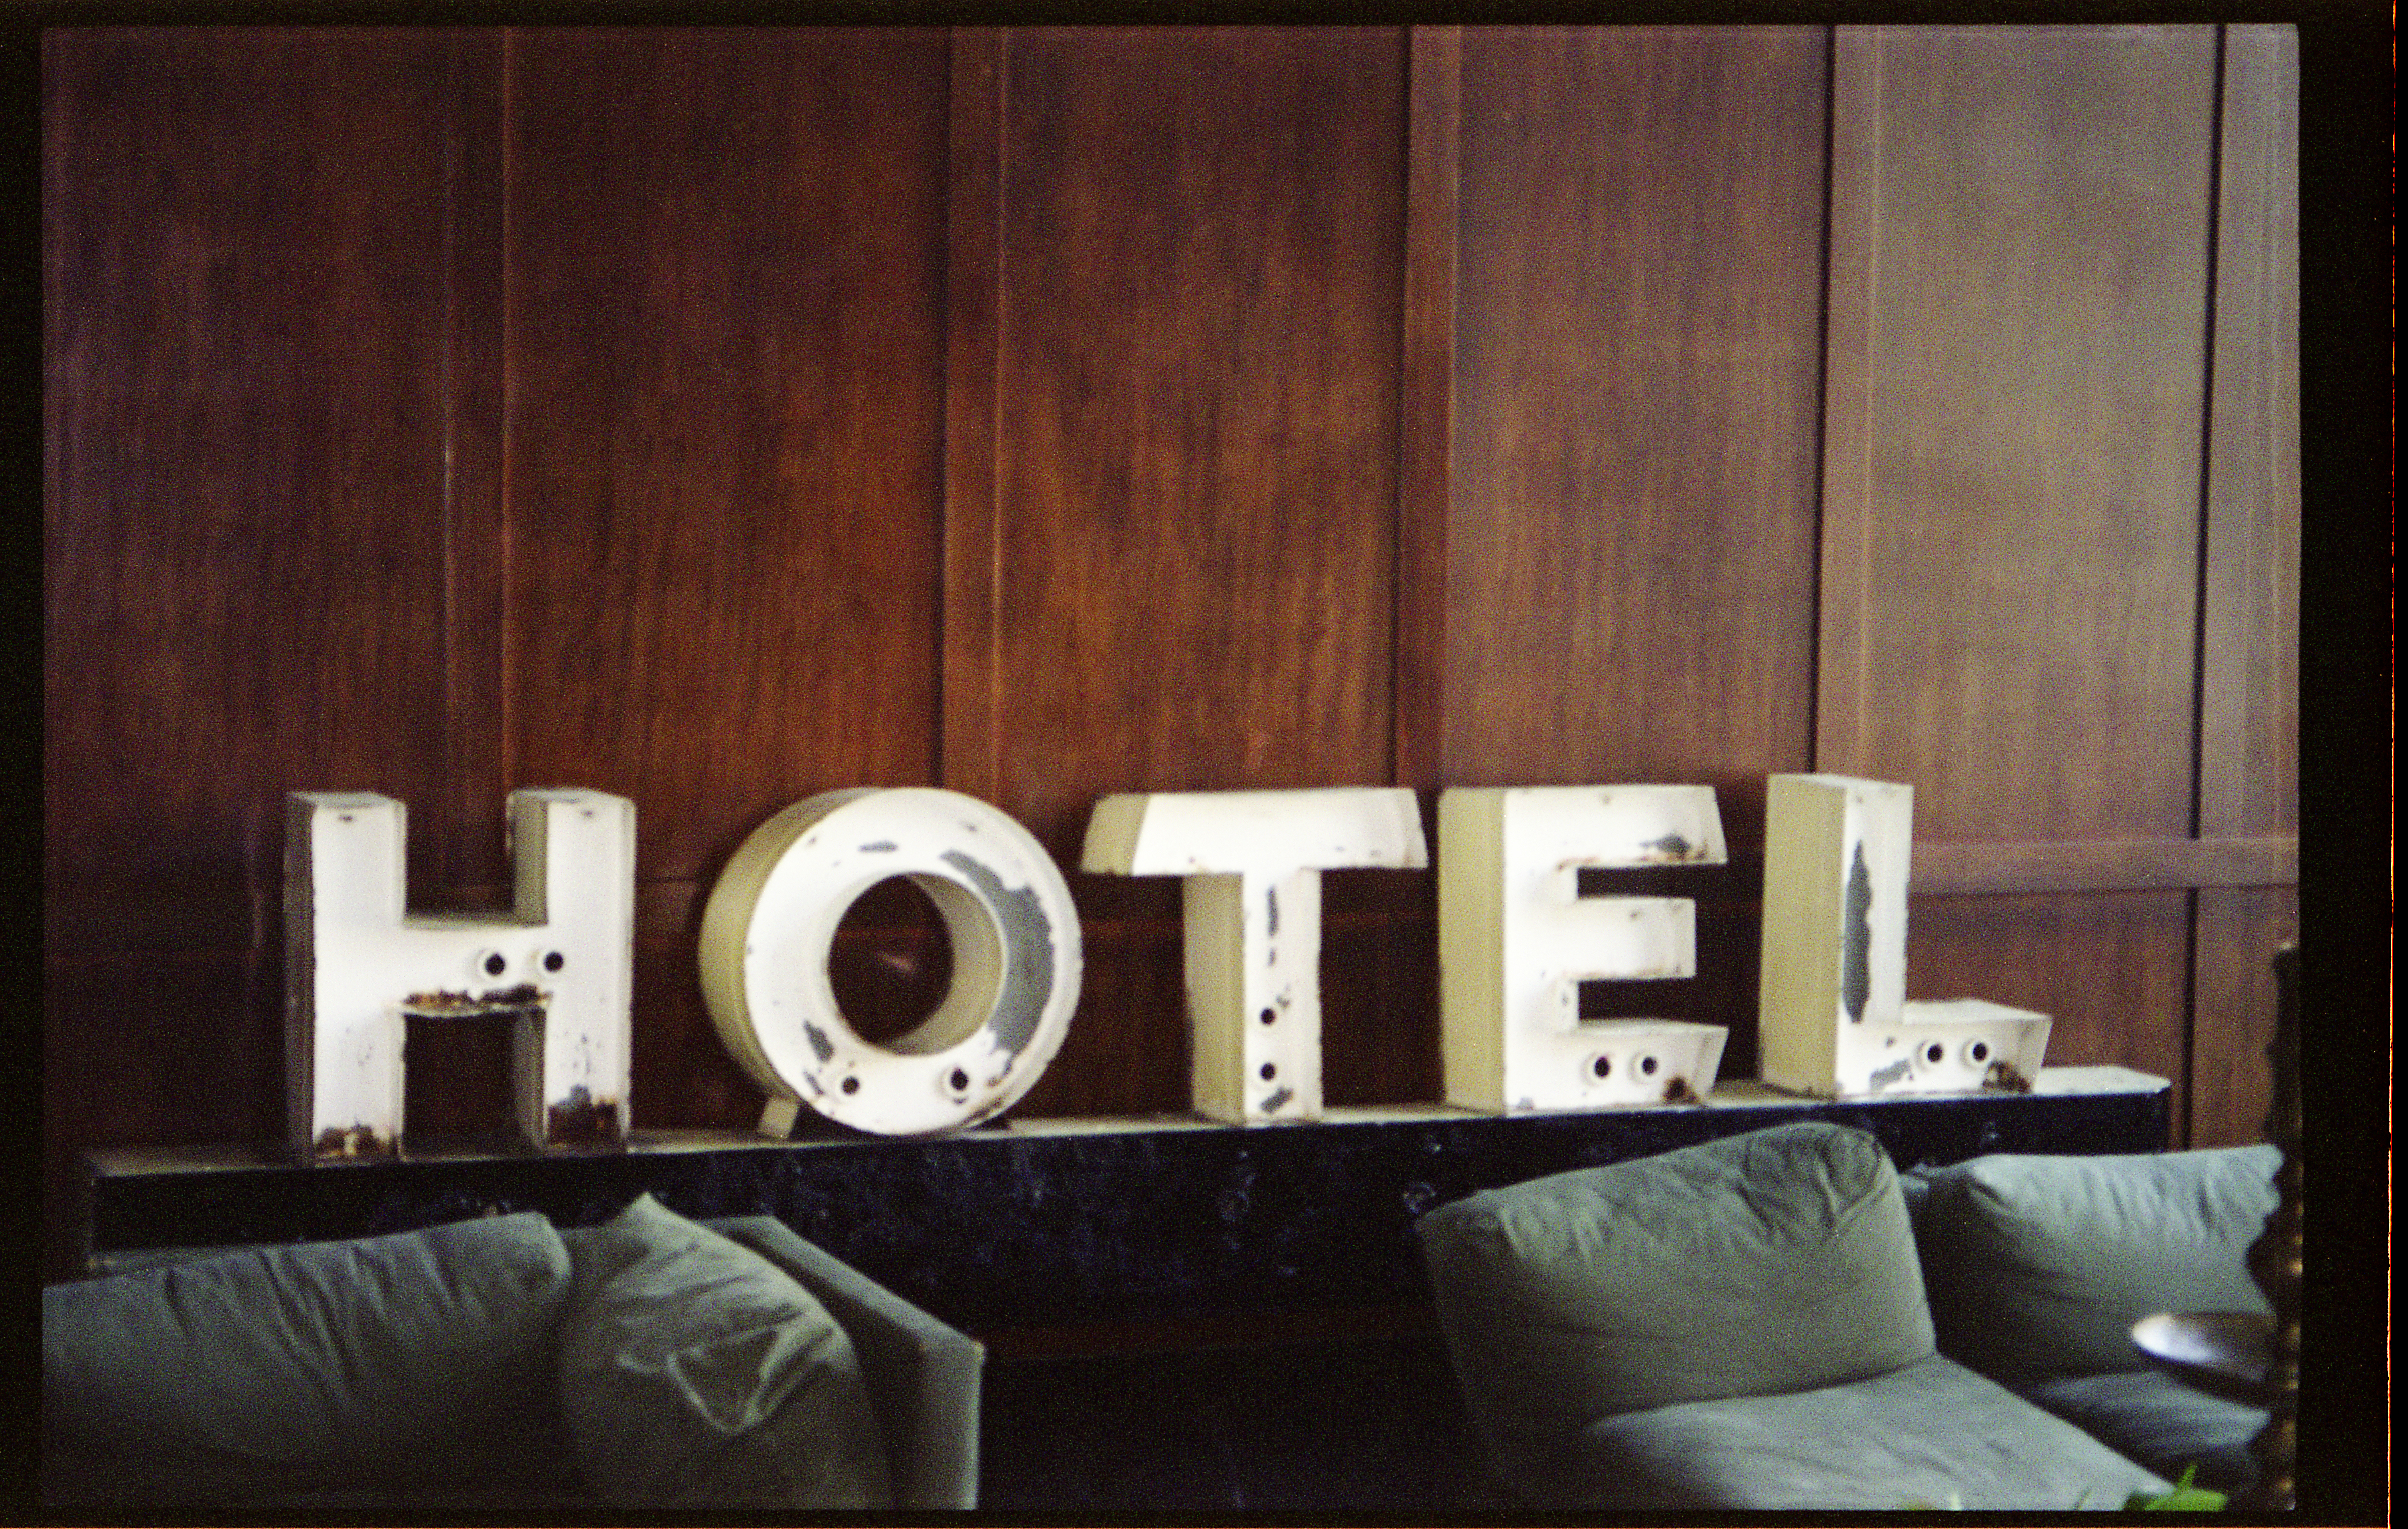 Vintage white 'HOTEL' sign leaning against dark wooden wall in lobby of ACE Hotel in Portland, Oregon.